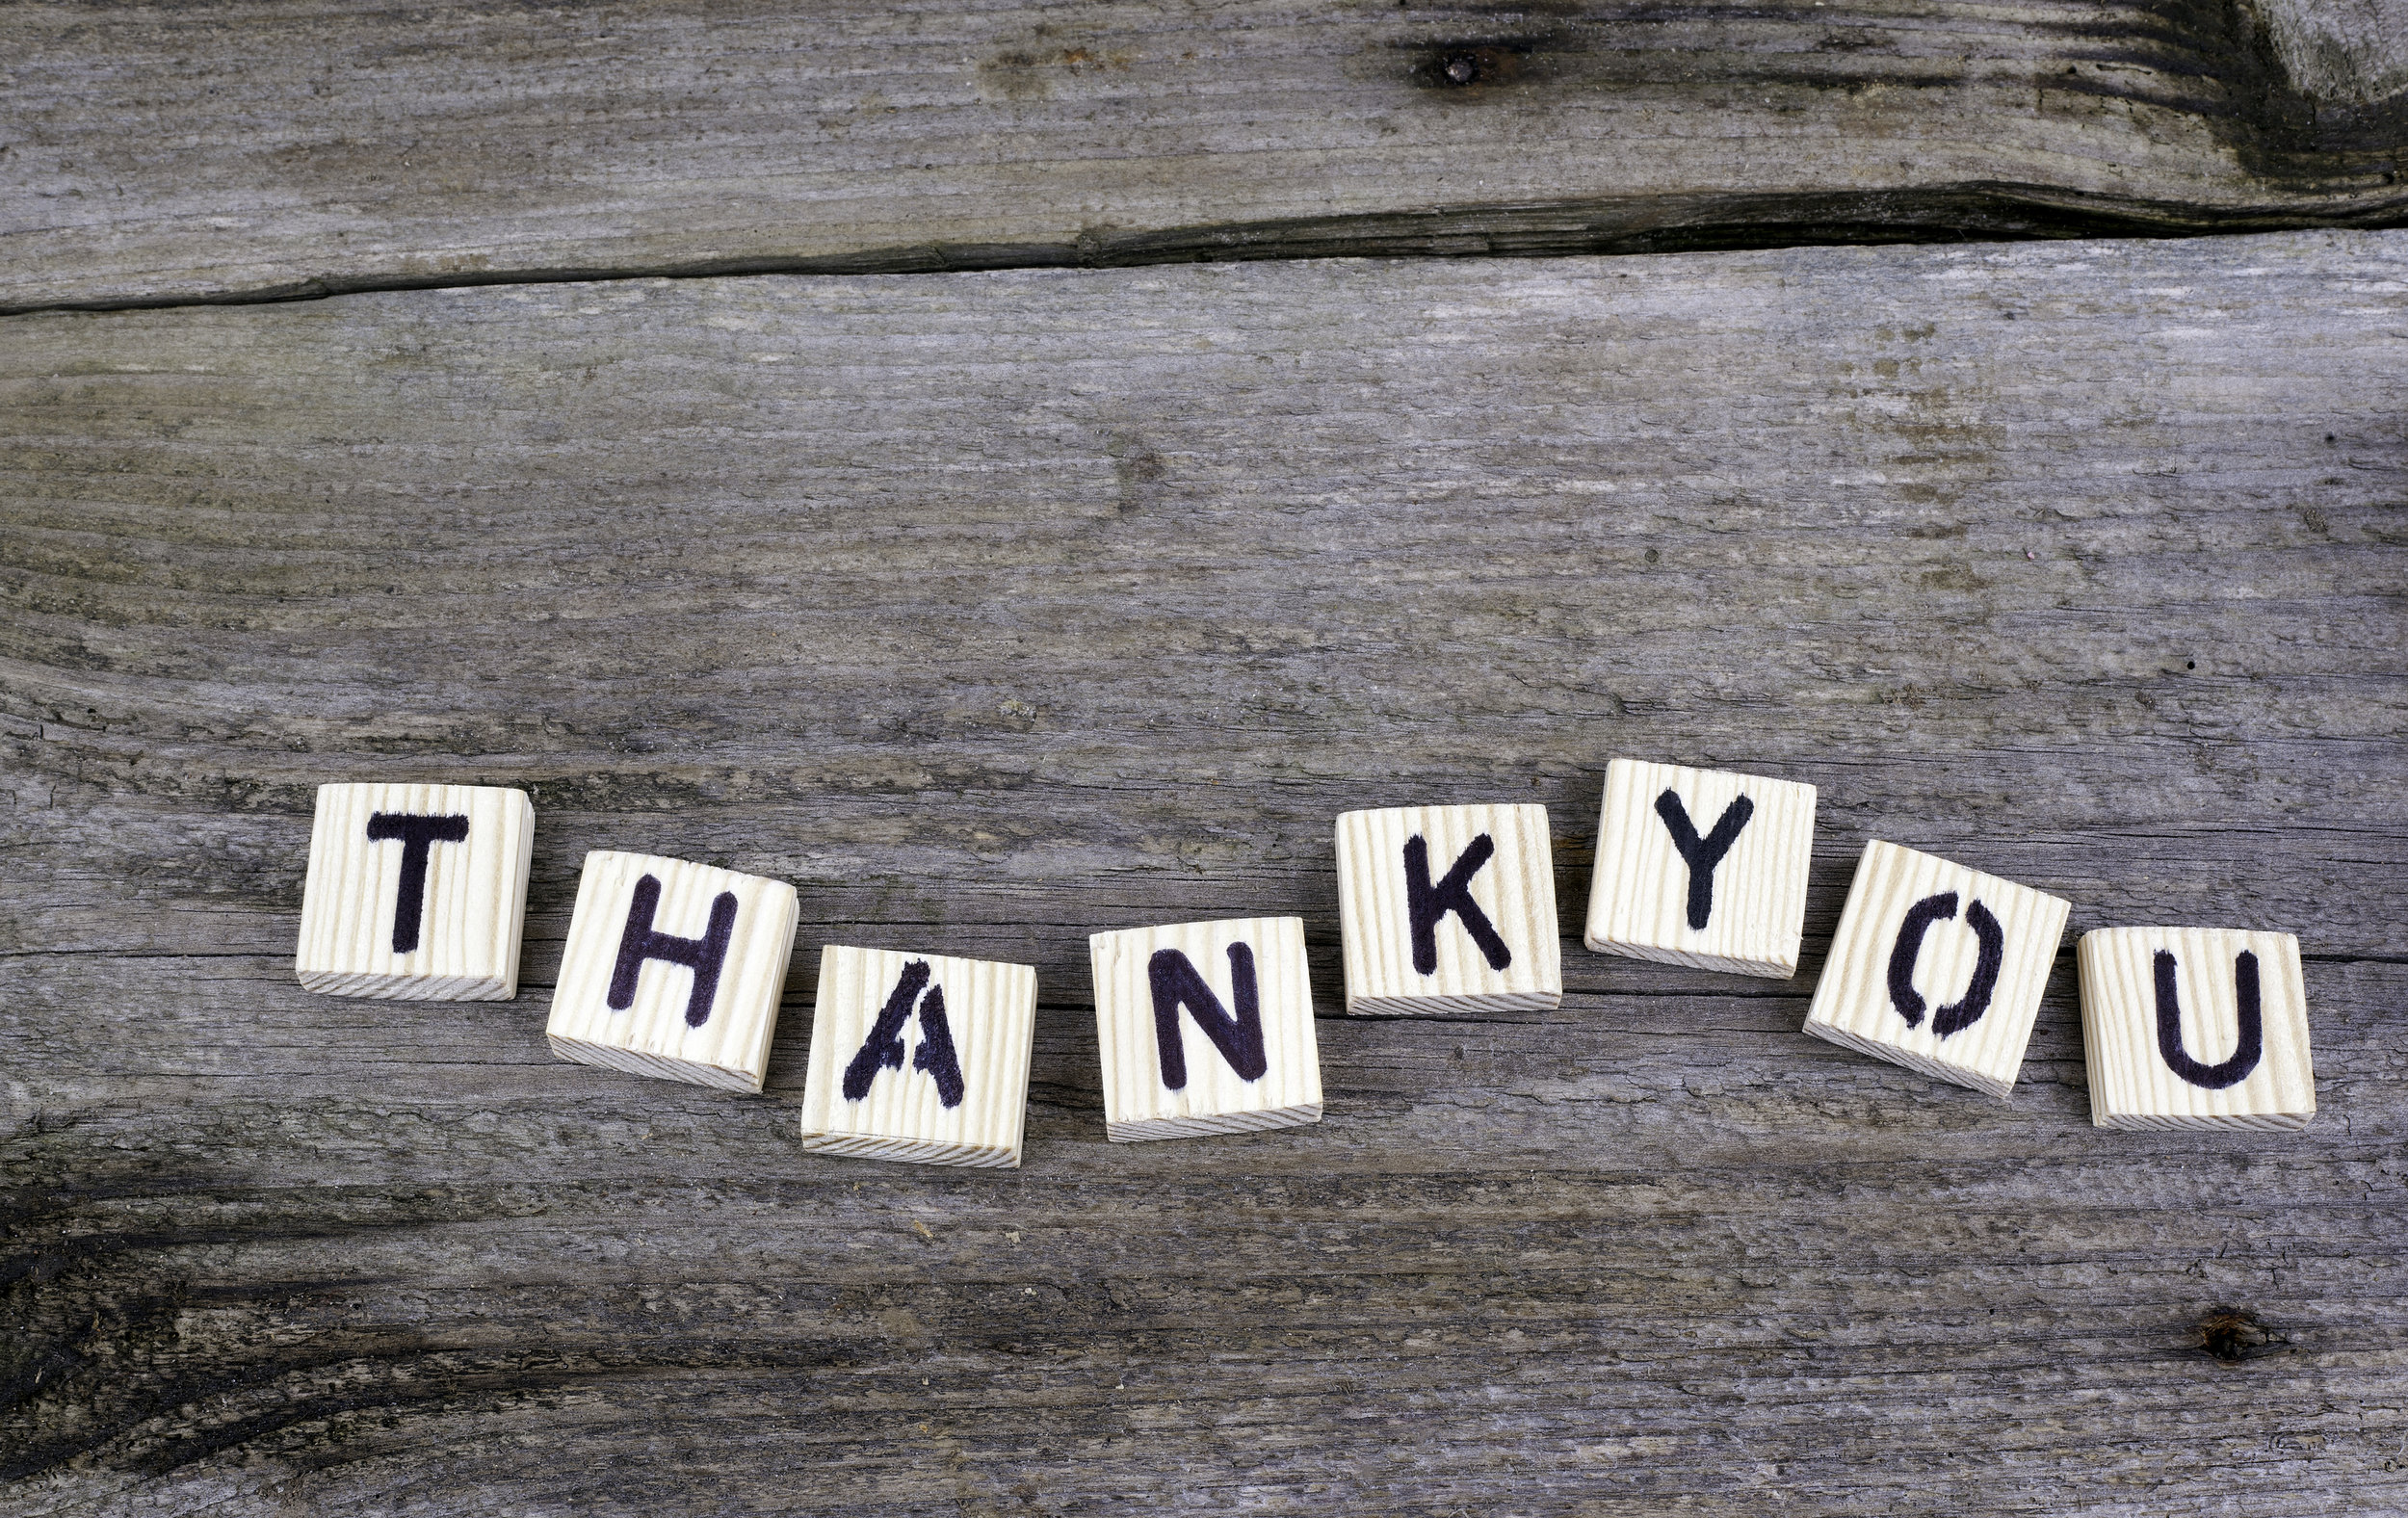 Text:-Thankyou-from-wooden-letters-526546806_3977x2507.jpeg